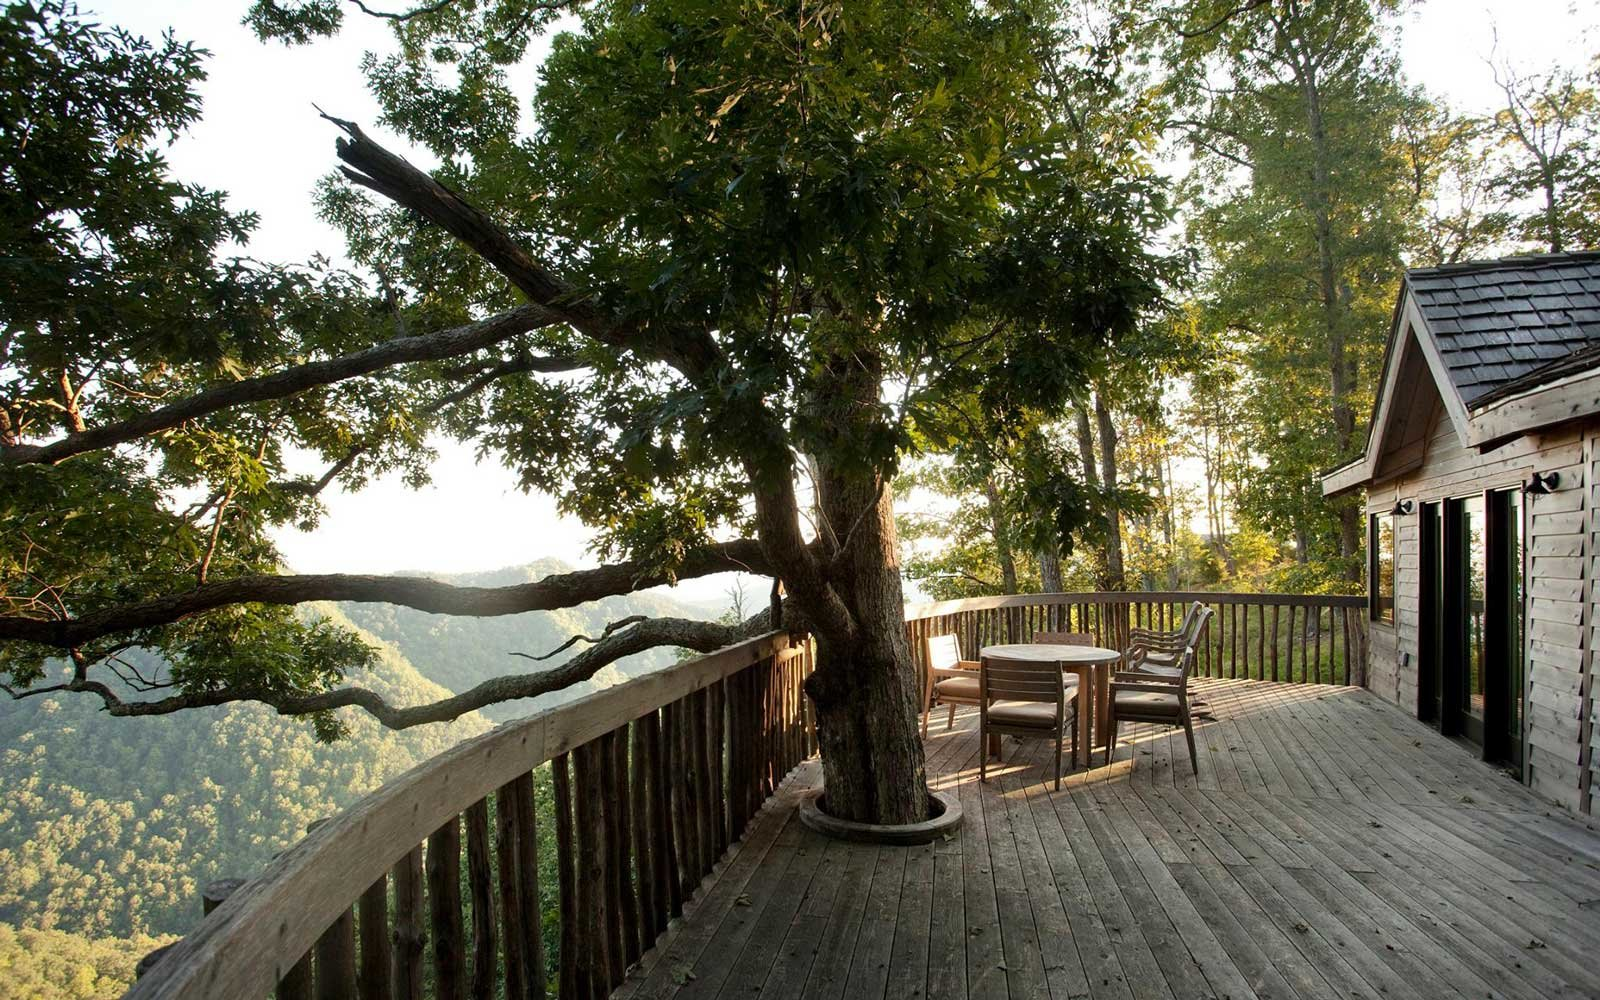 The Tree Houses at Primland, Meadows of Dan, Virginia